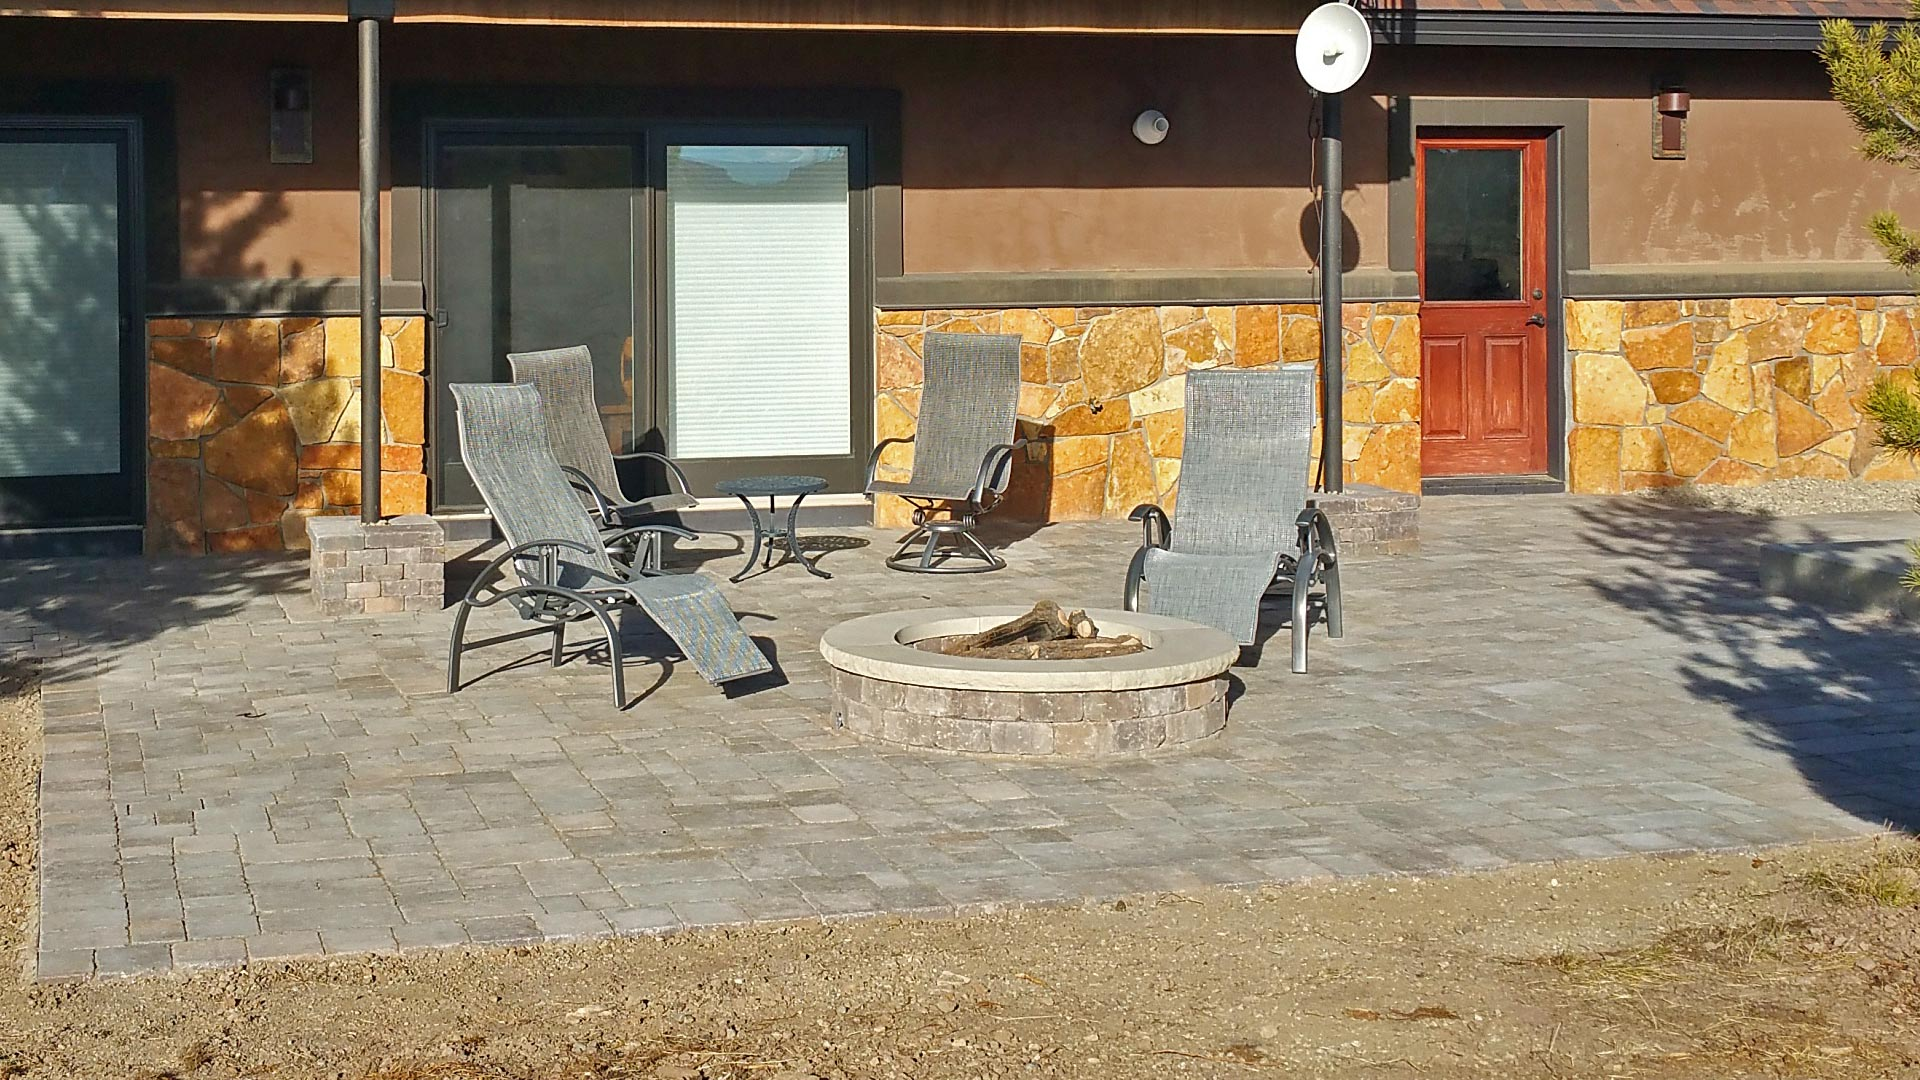 A new paver patio that was installed by our team of professionals in the back yard of a home in Fraser, CO.